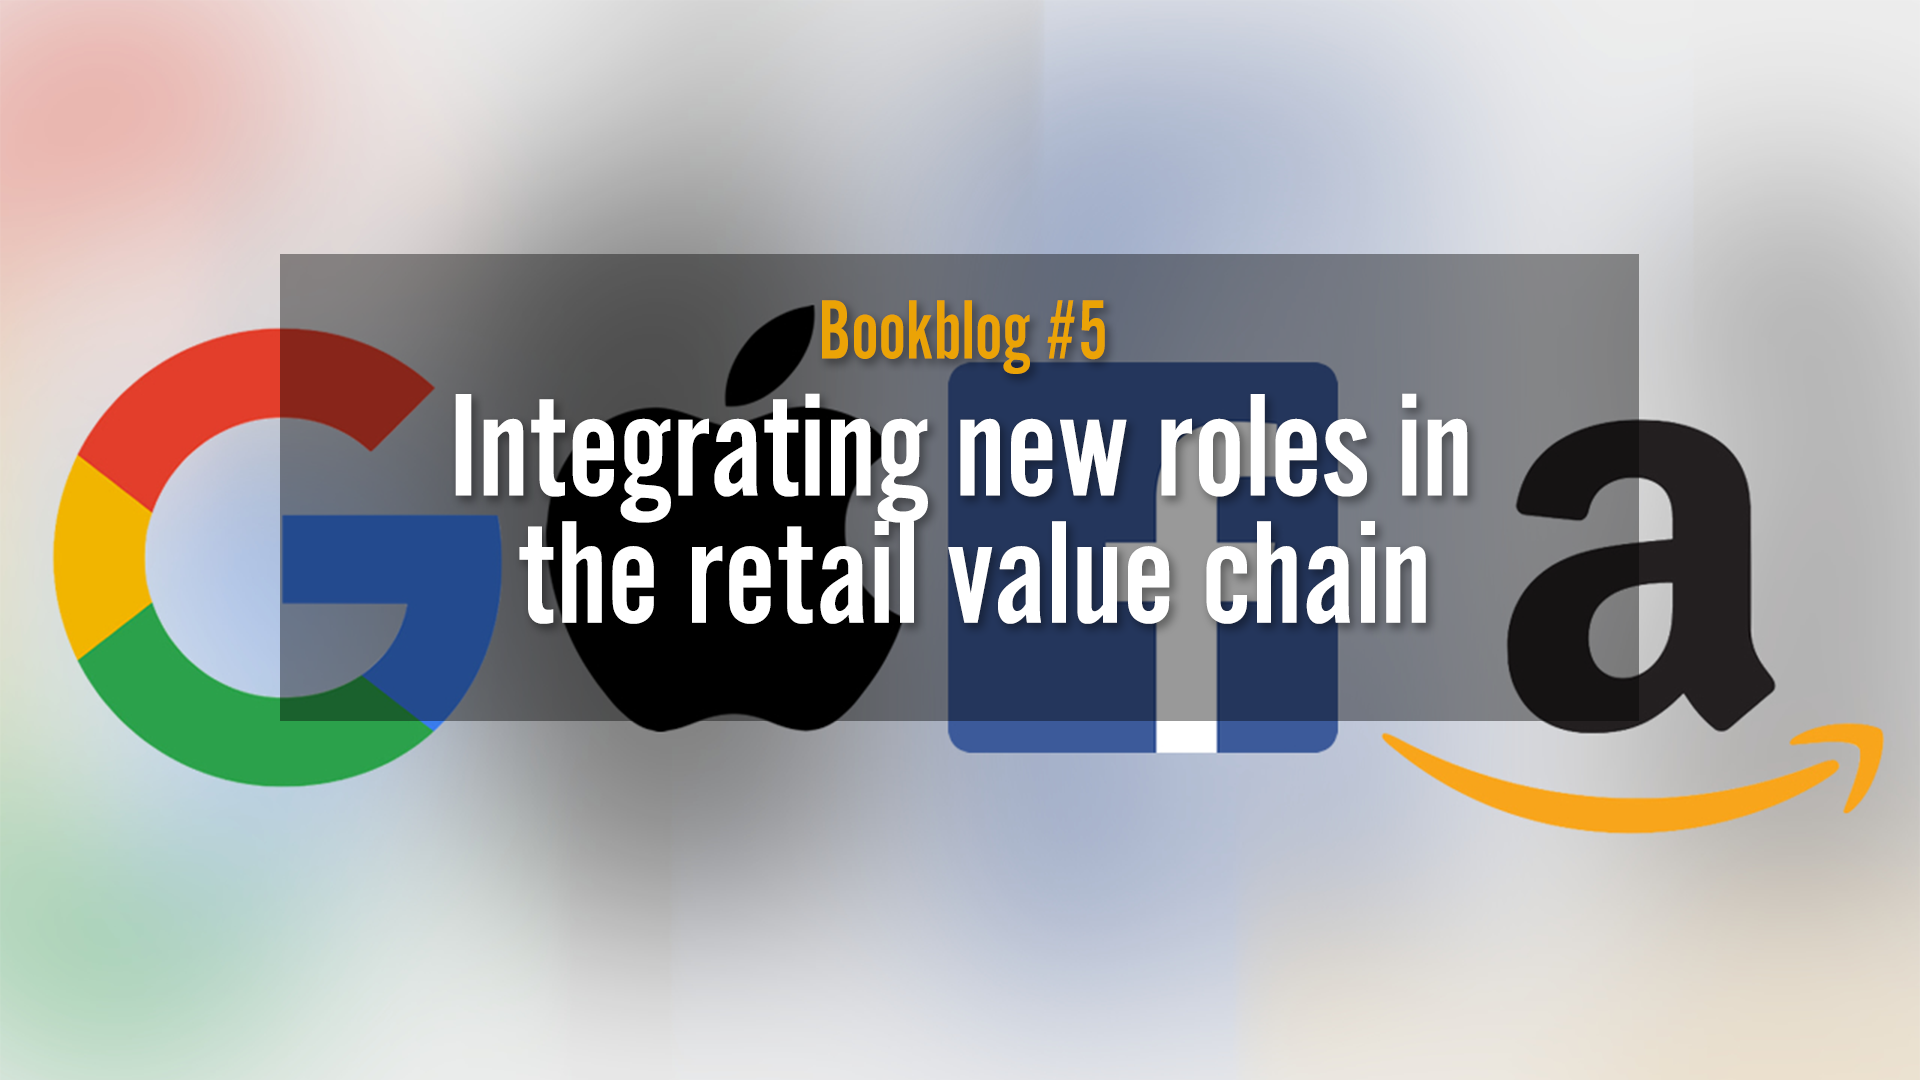 Retail roleplay, changes in the value chain